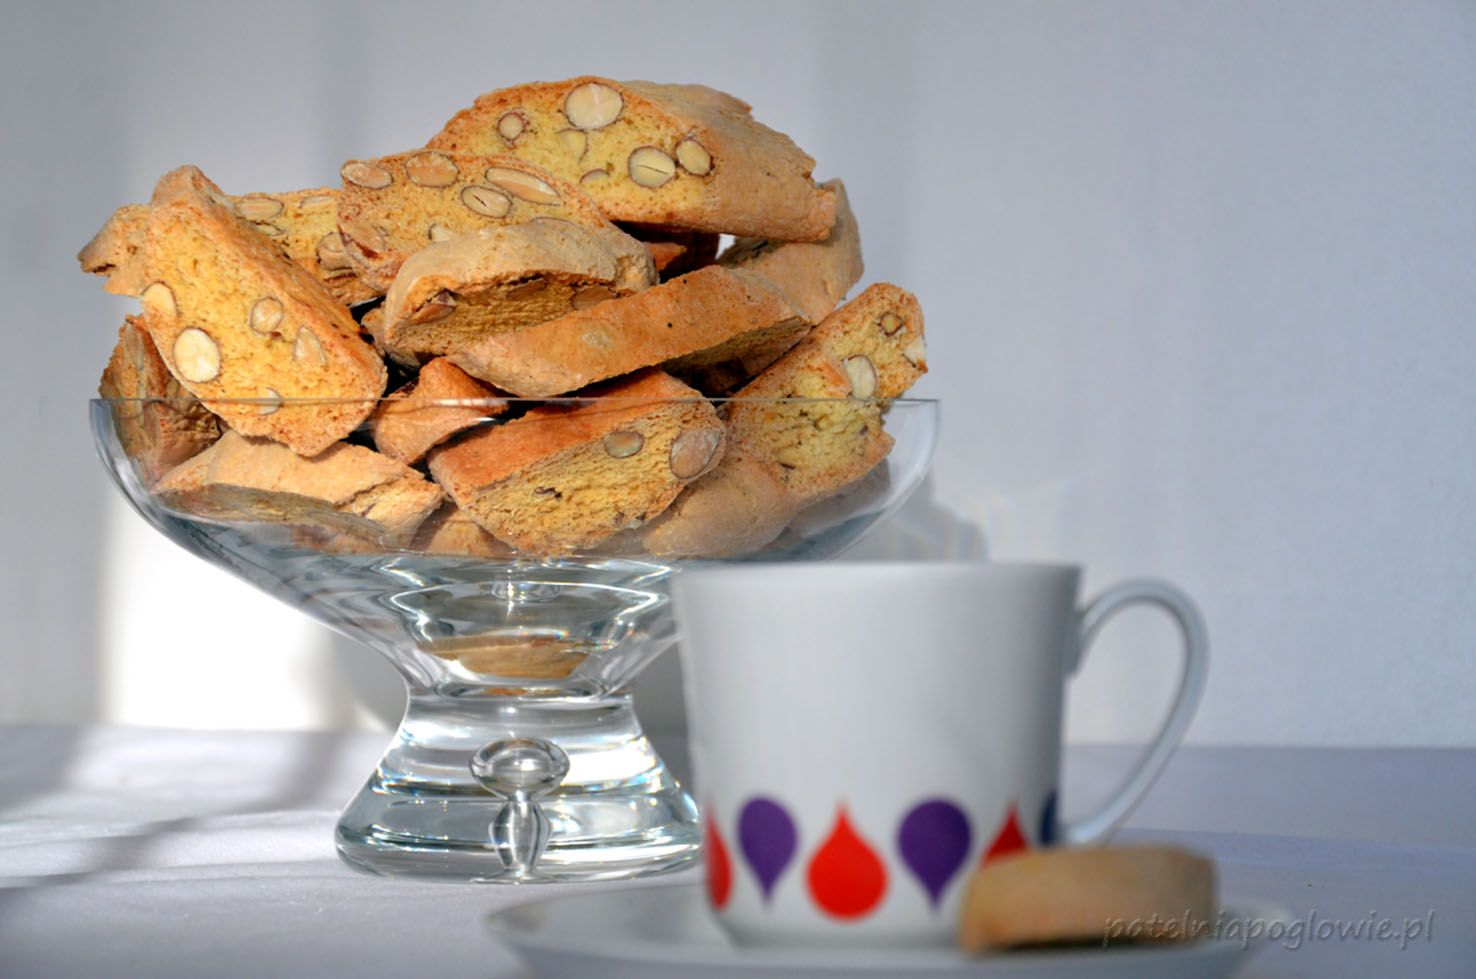 Cantucci, cantuccini - delicious cookies/ biscuits with almonds.